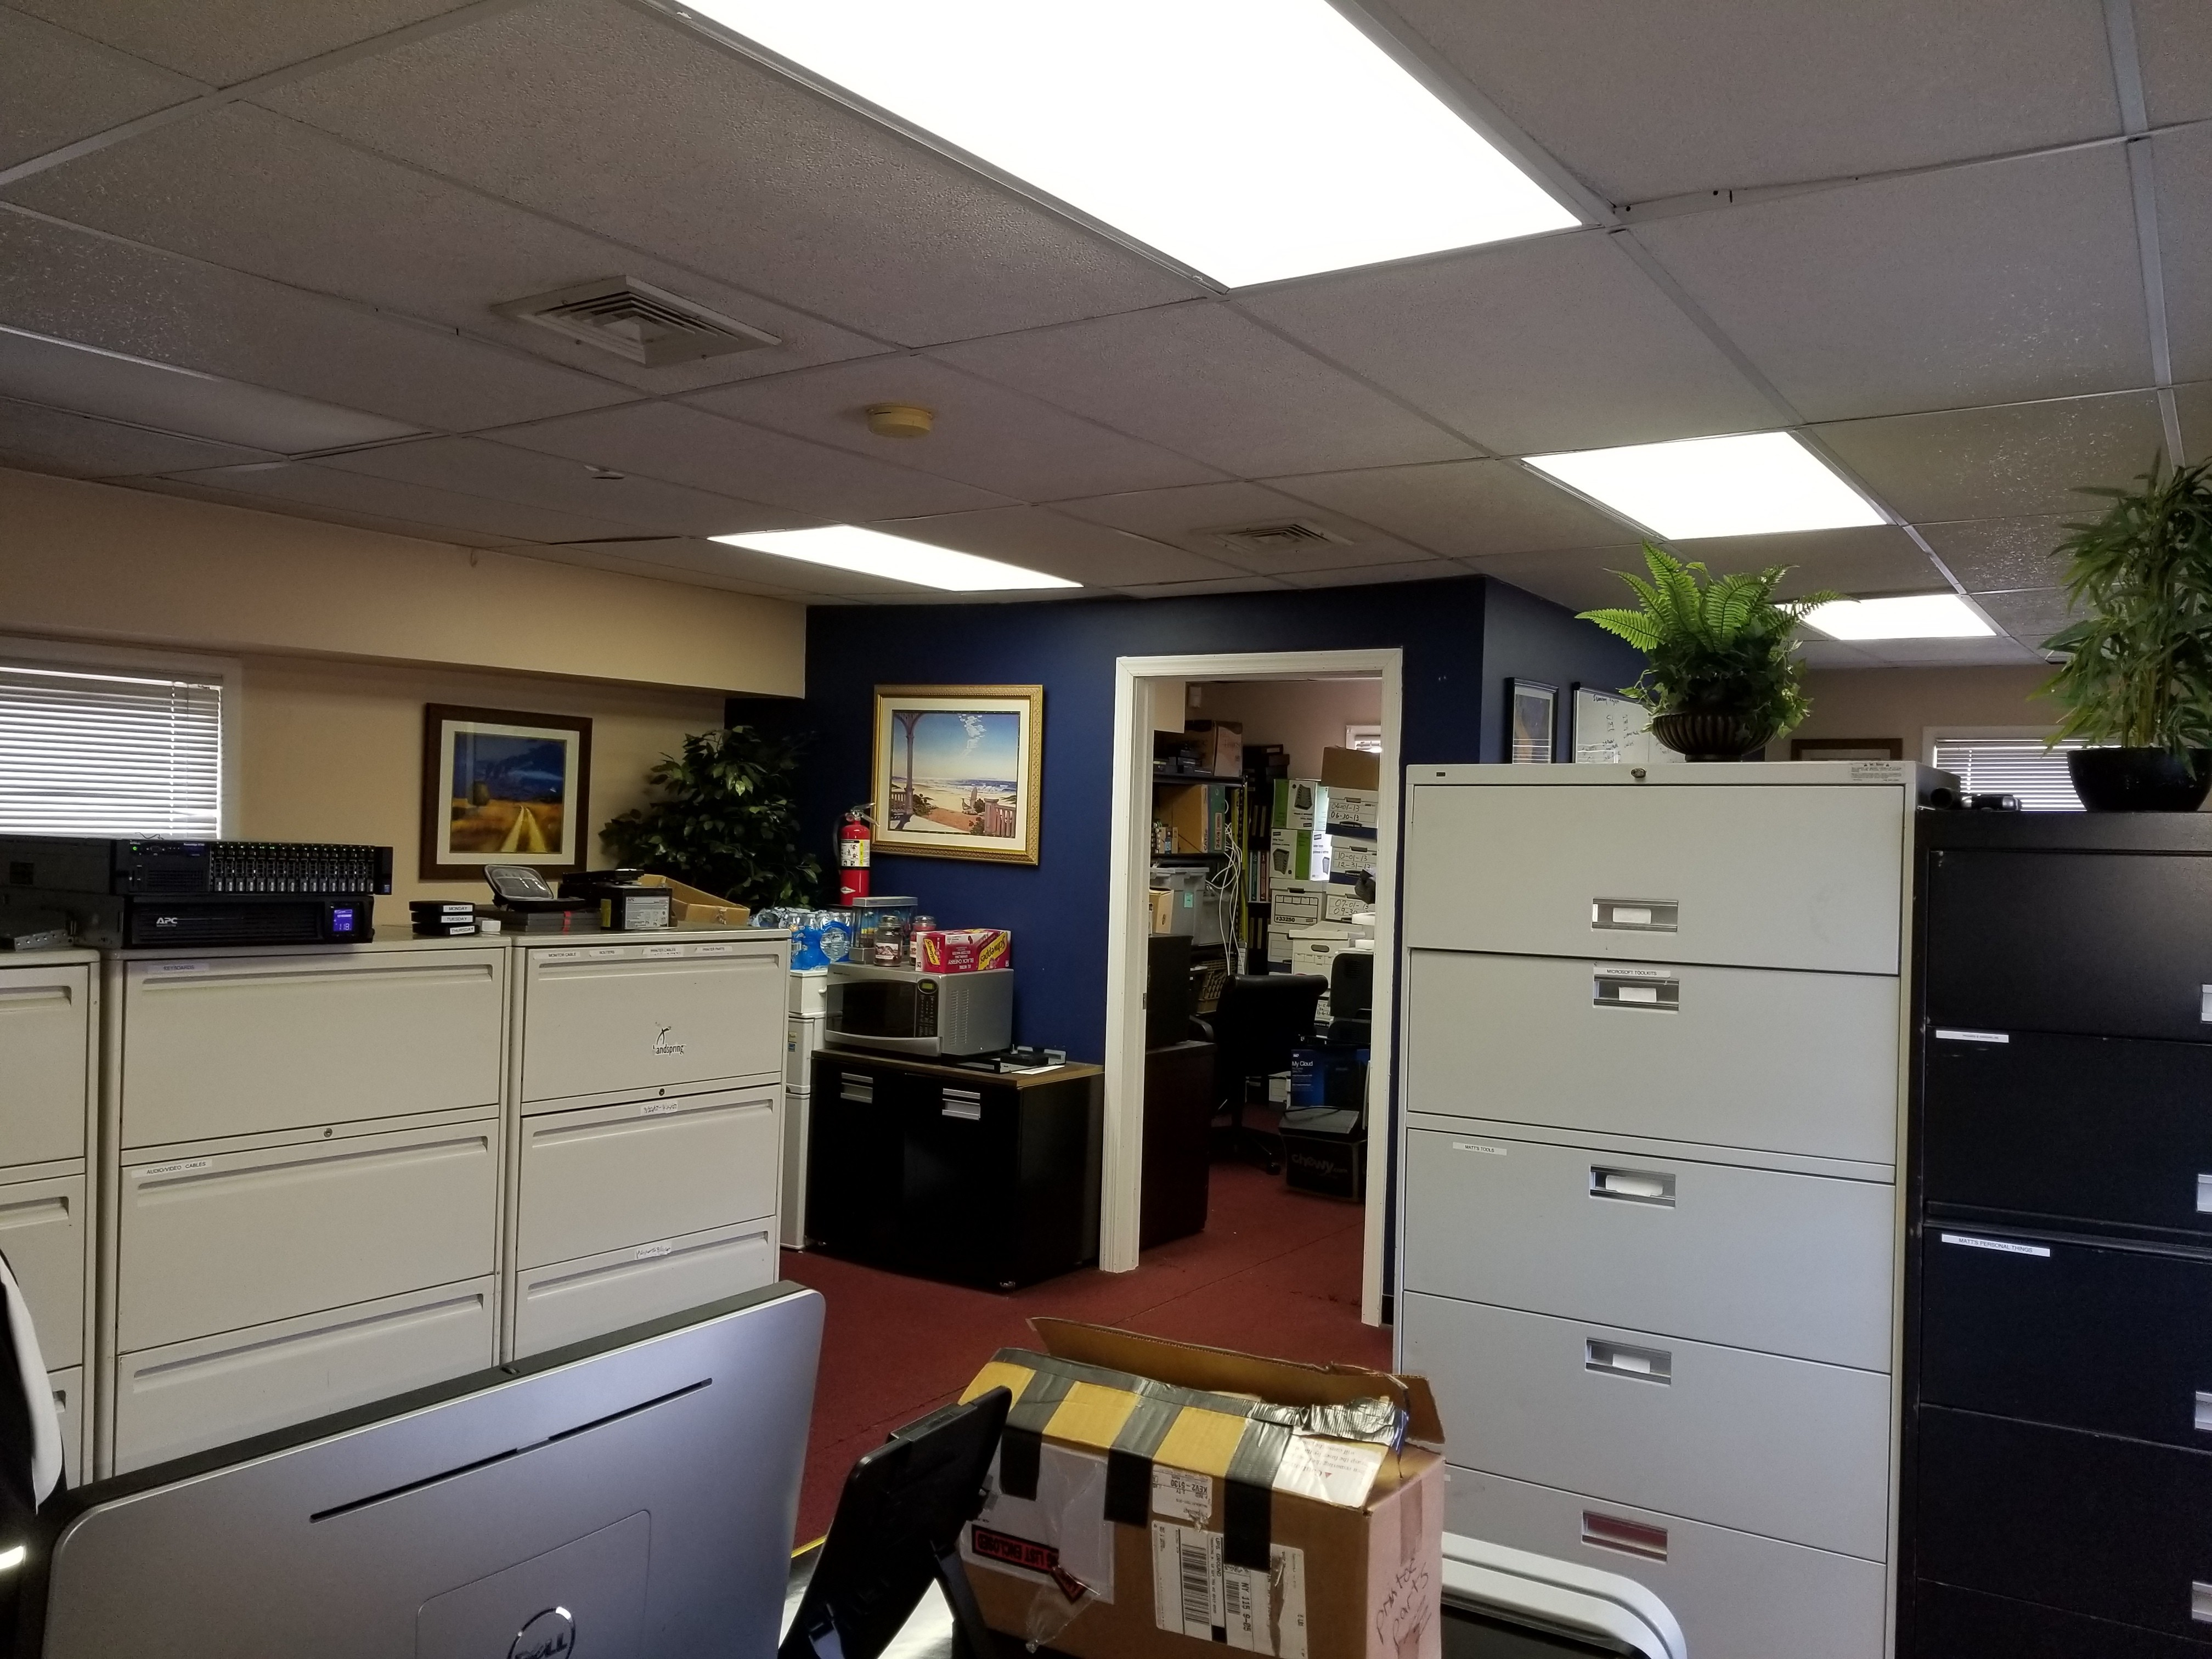 160-LBRD-View-from-entrance-office20181110_111559